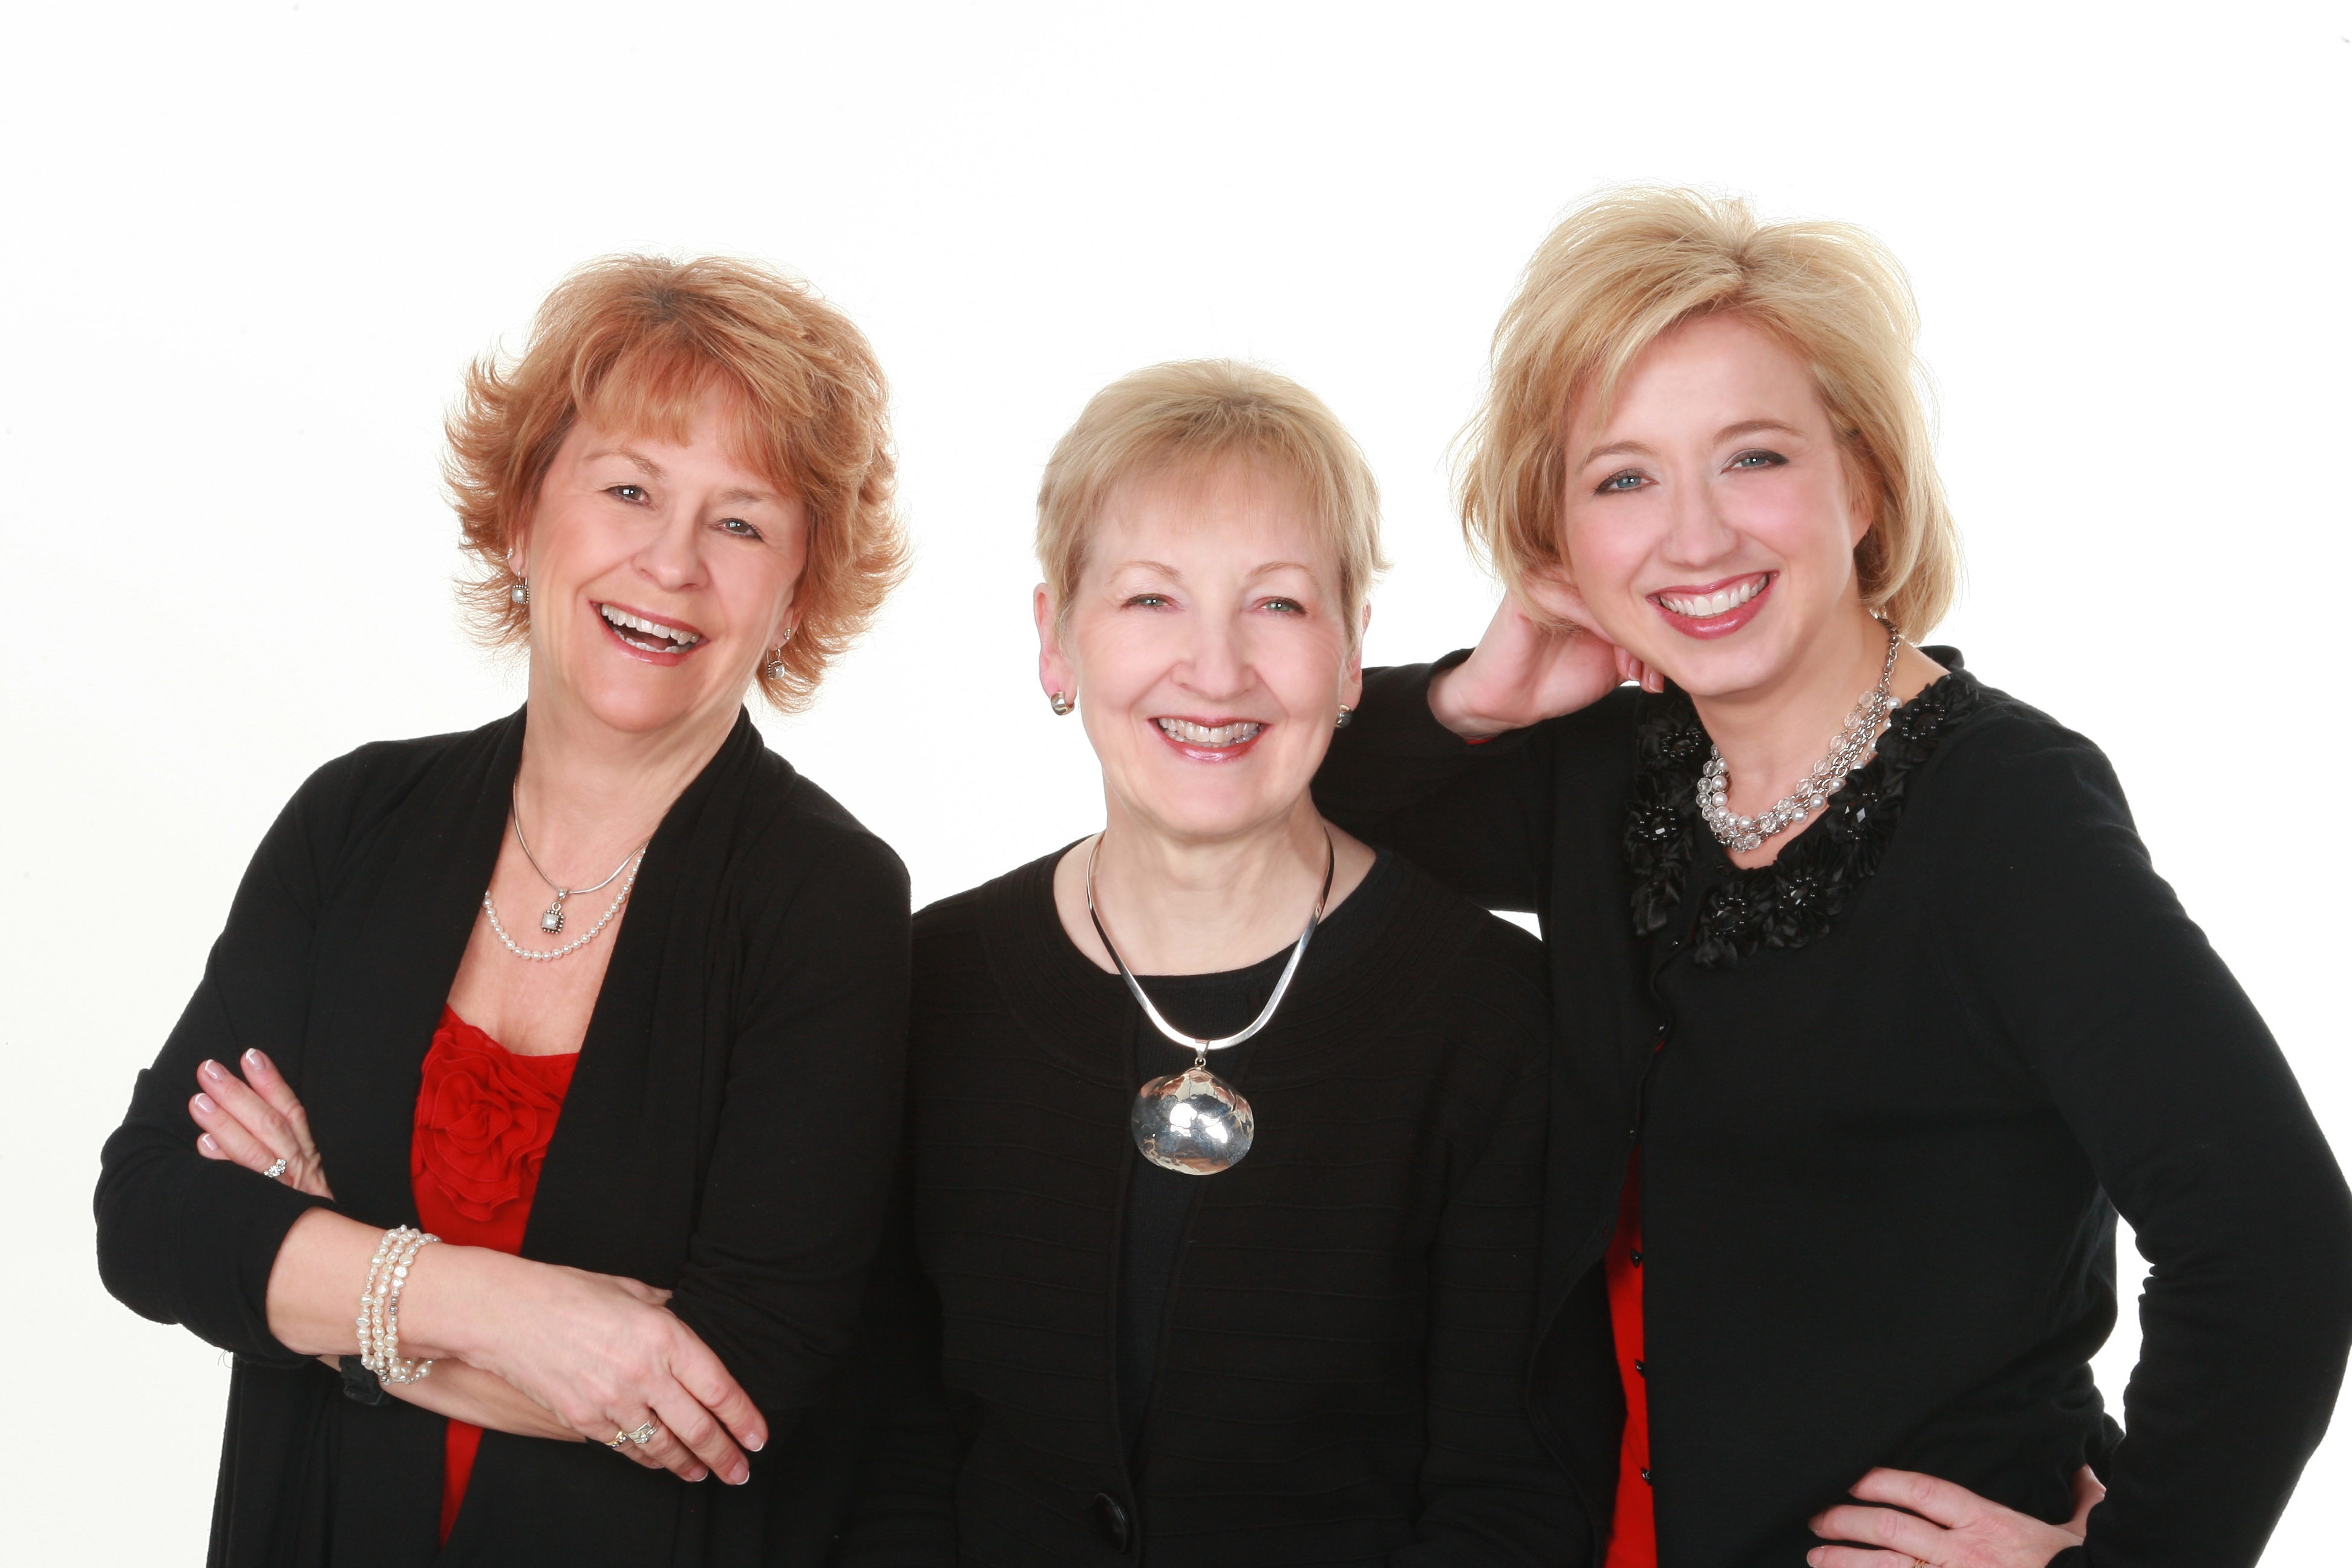 The Sharon Harkness real estate experts.